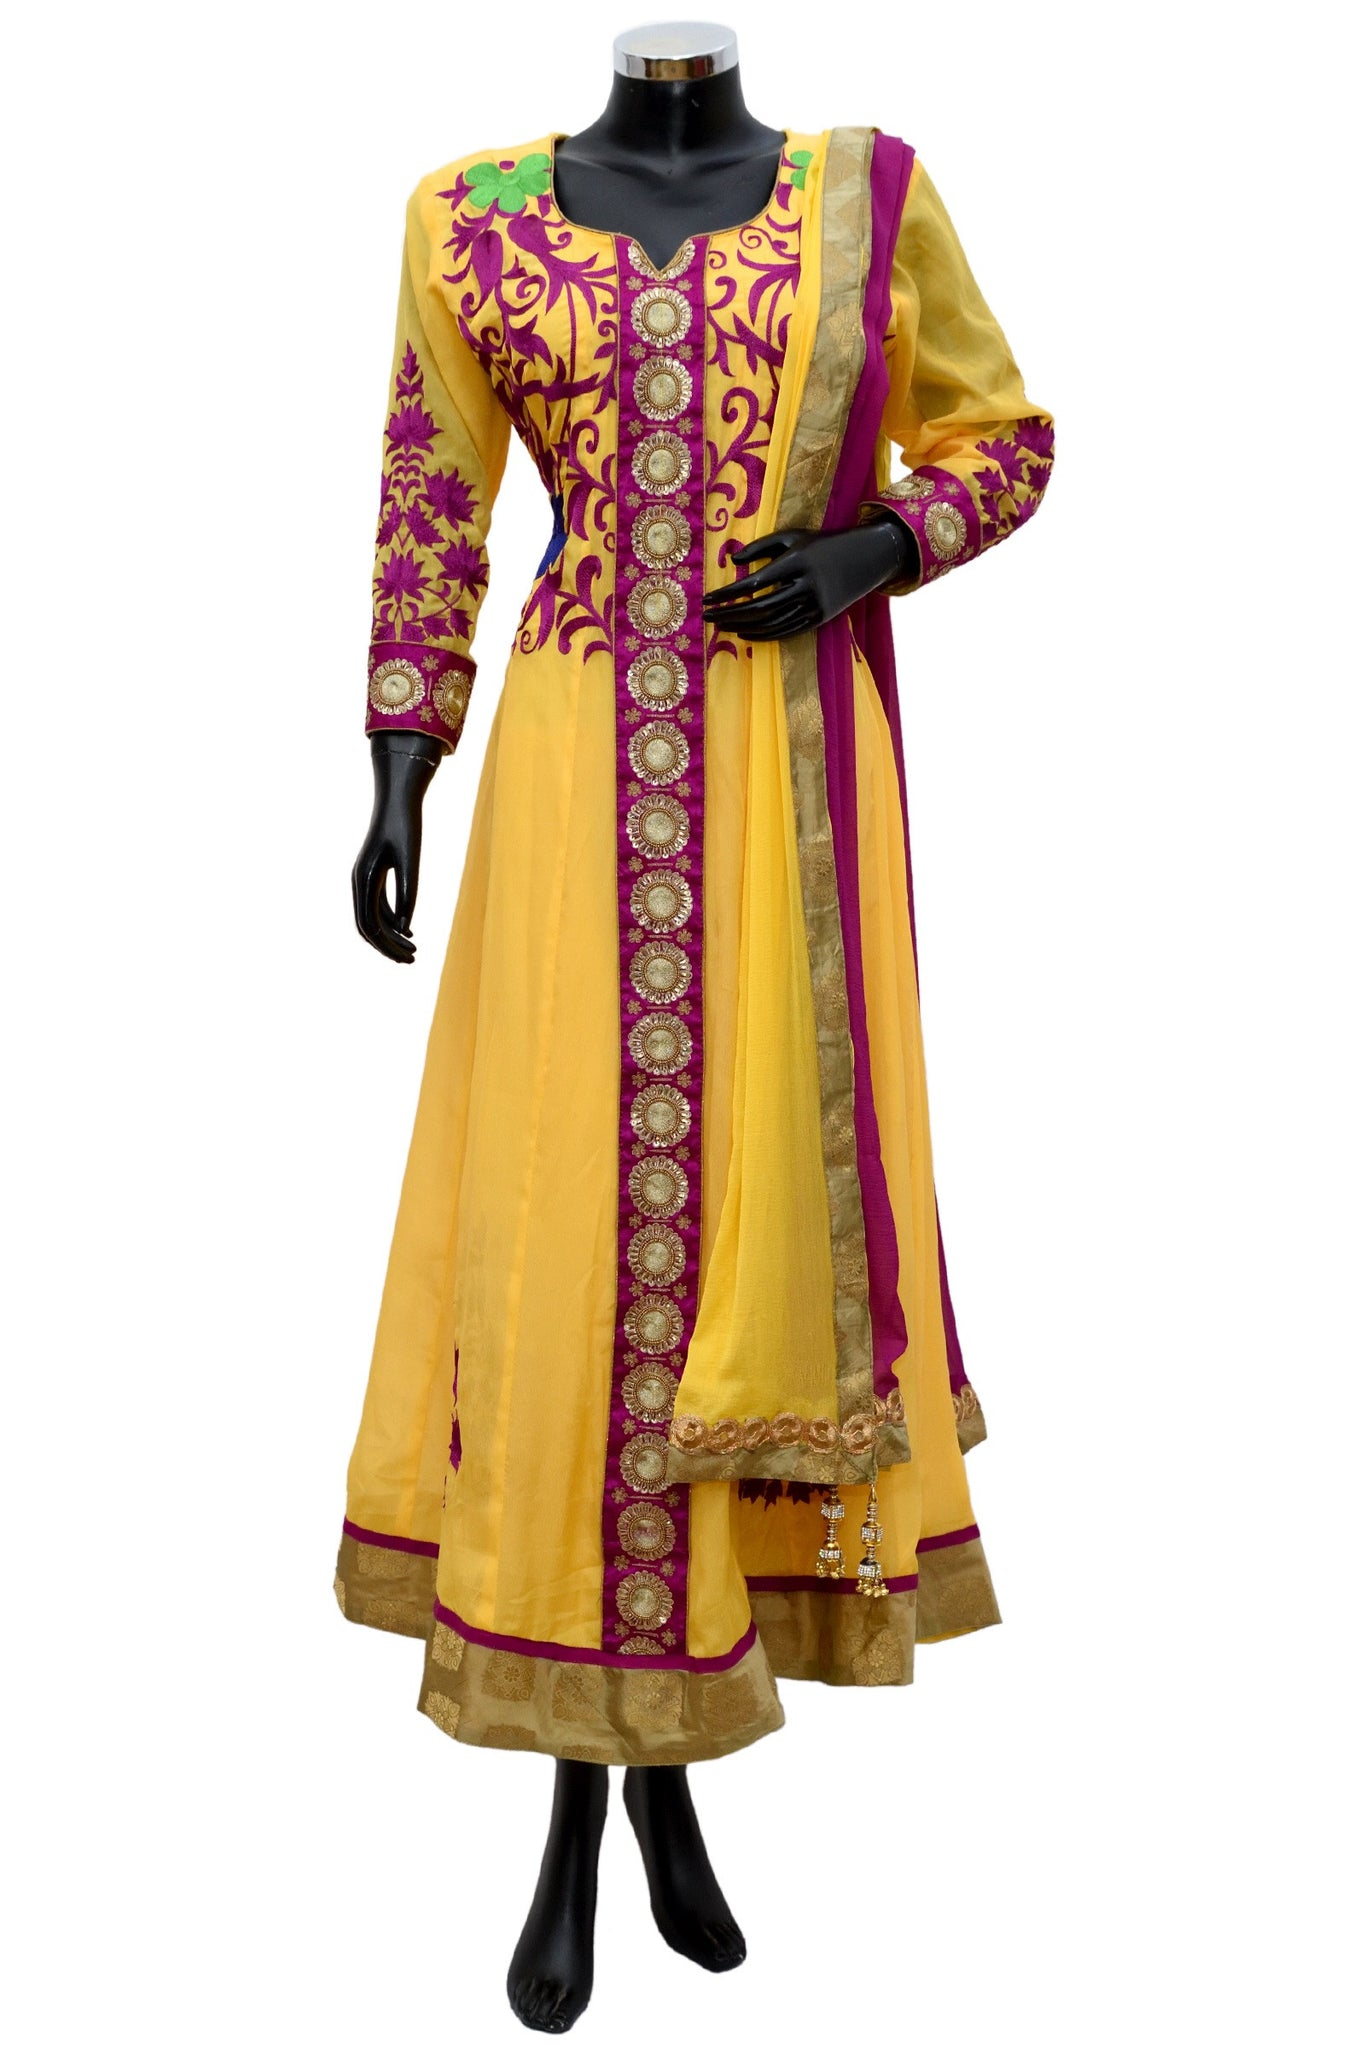 Embroidered dress in red and yellow fdn0531-921